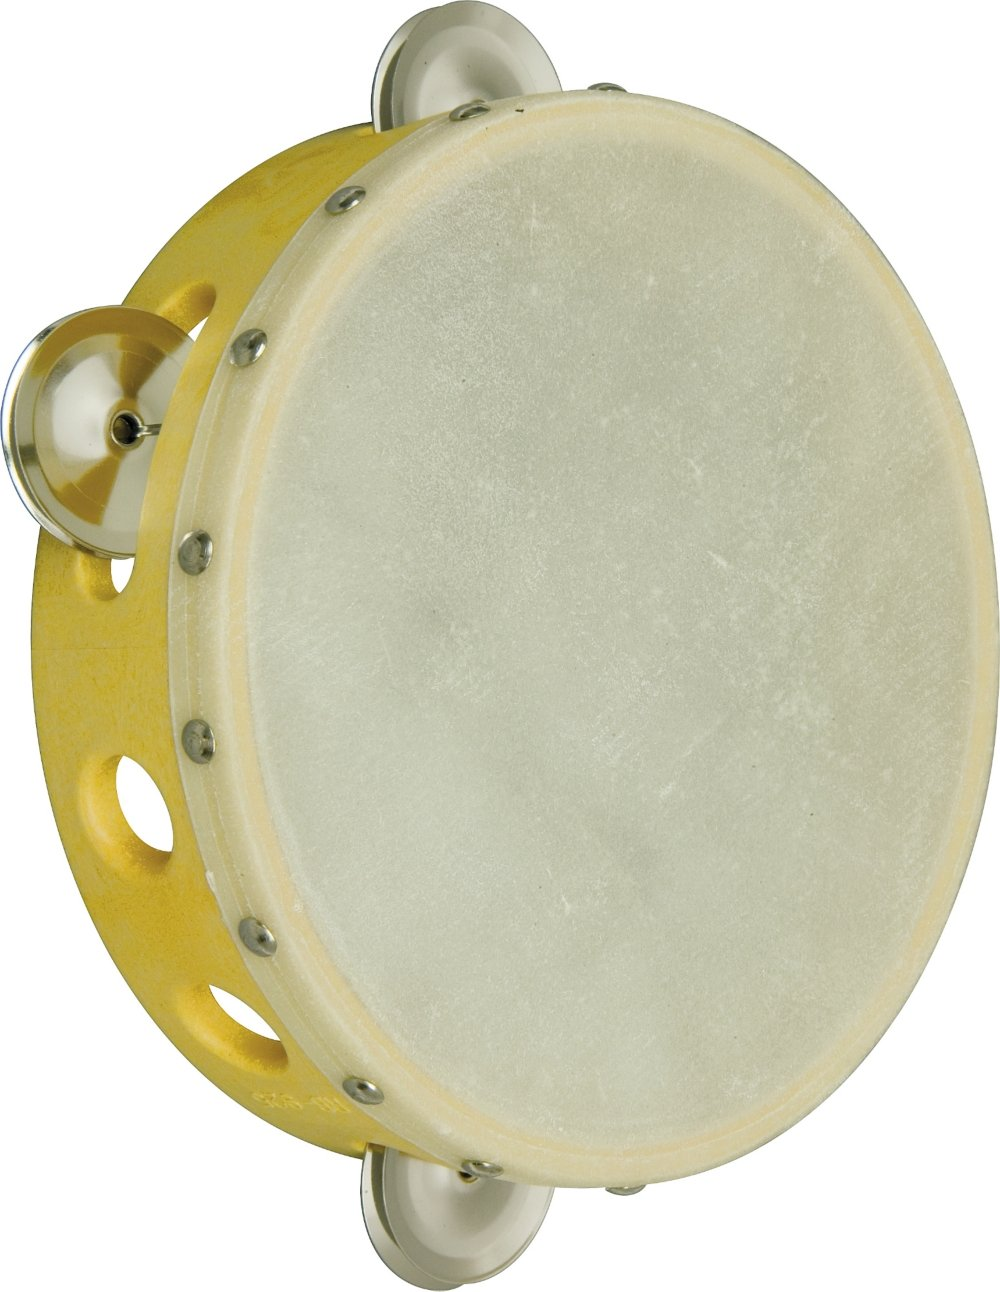 70% OFF Outlet Fort Worth Mall Rhythm Band Tambourine RB925